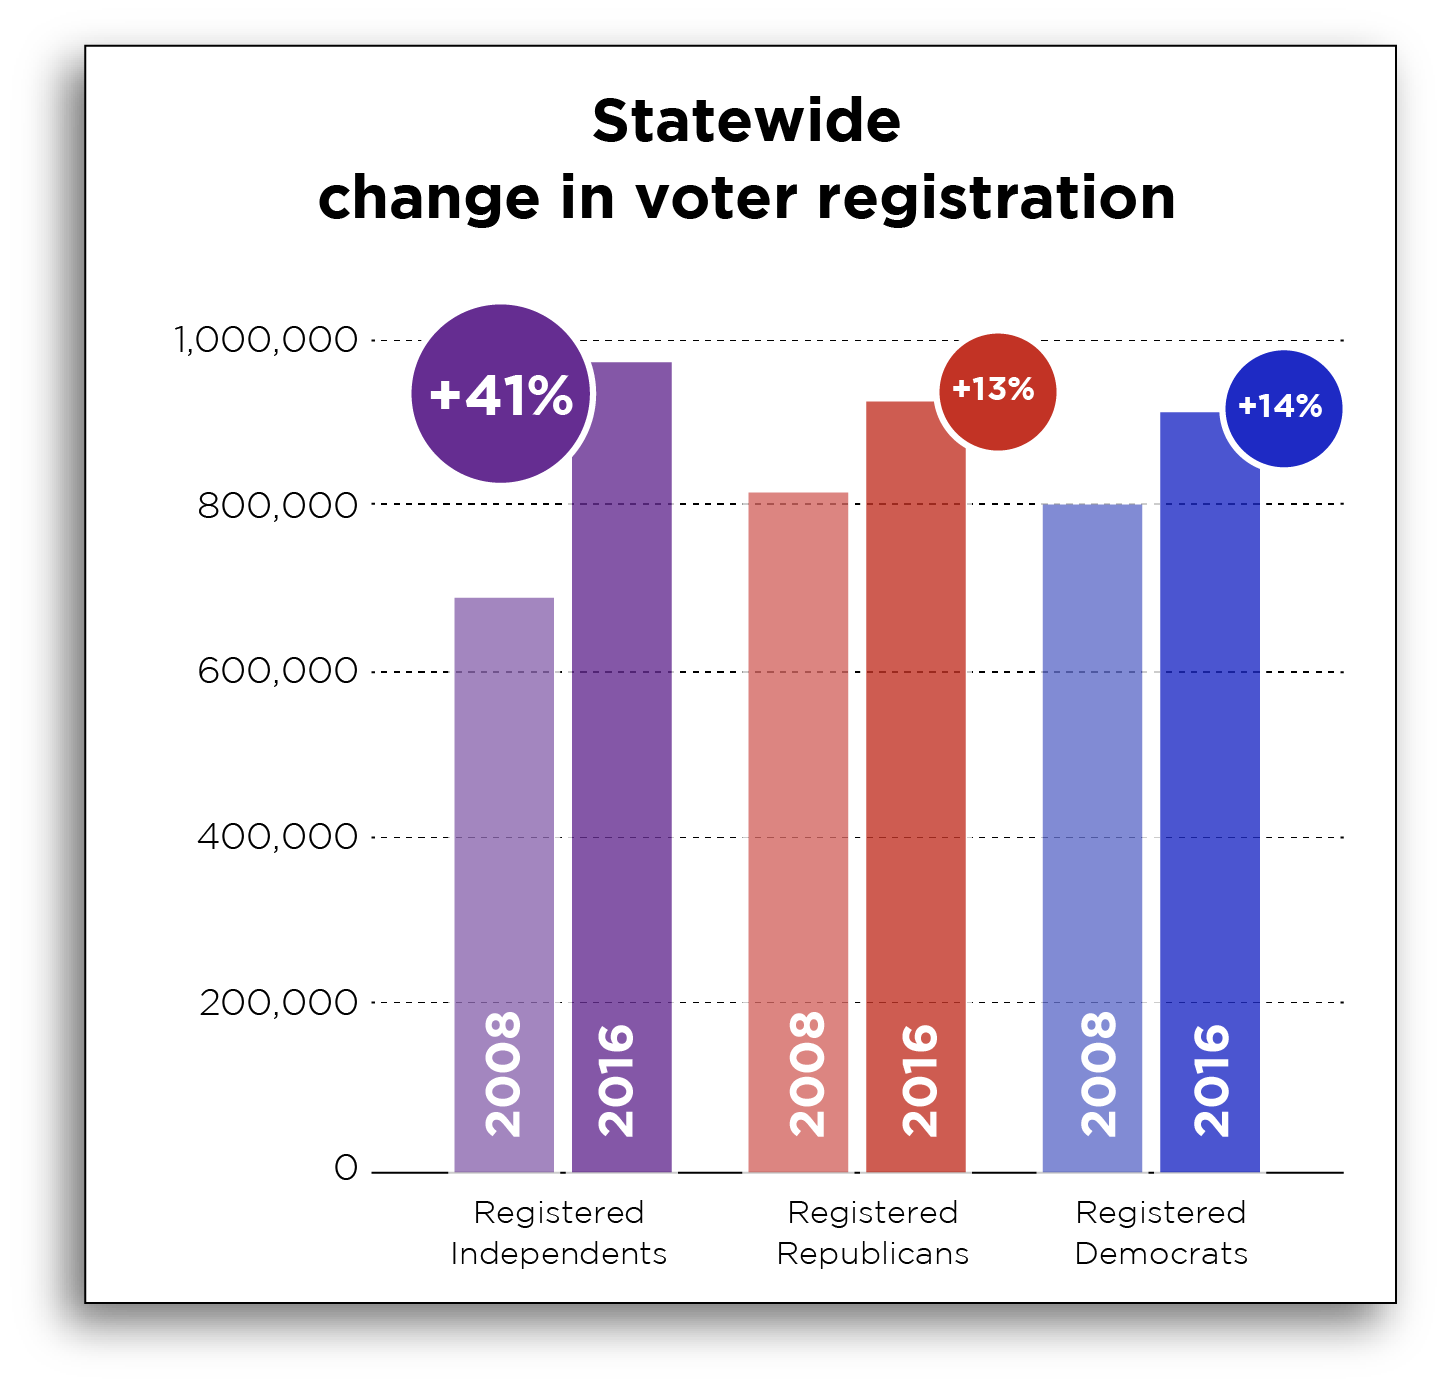 Change in voter registrations since 2012